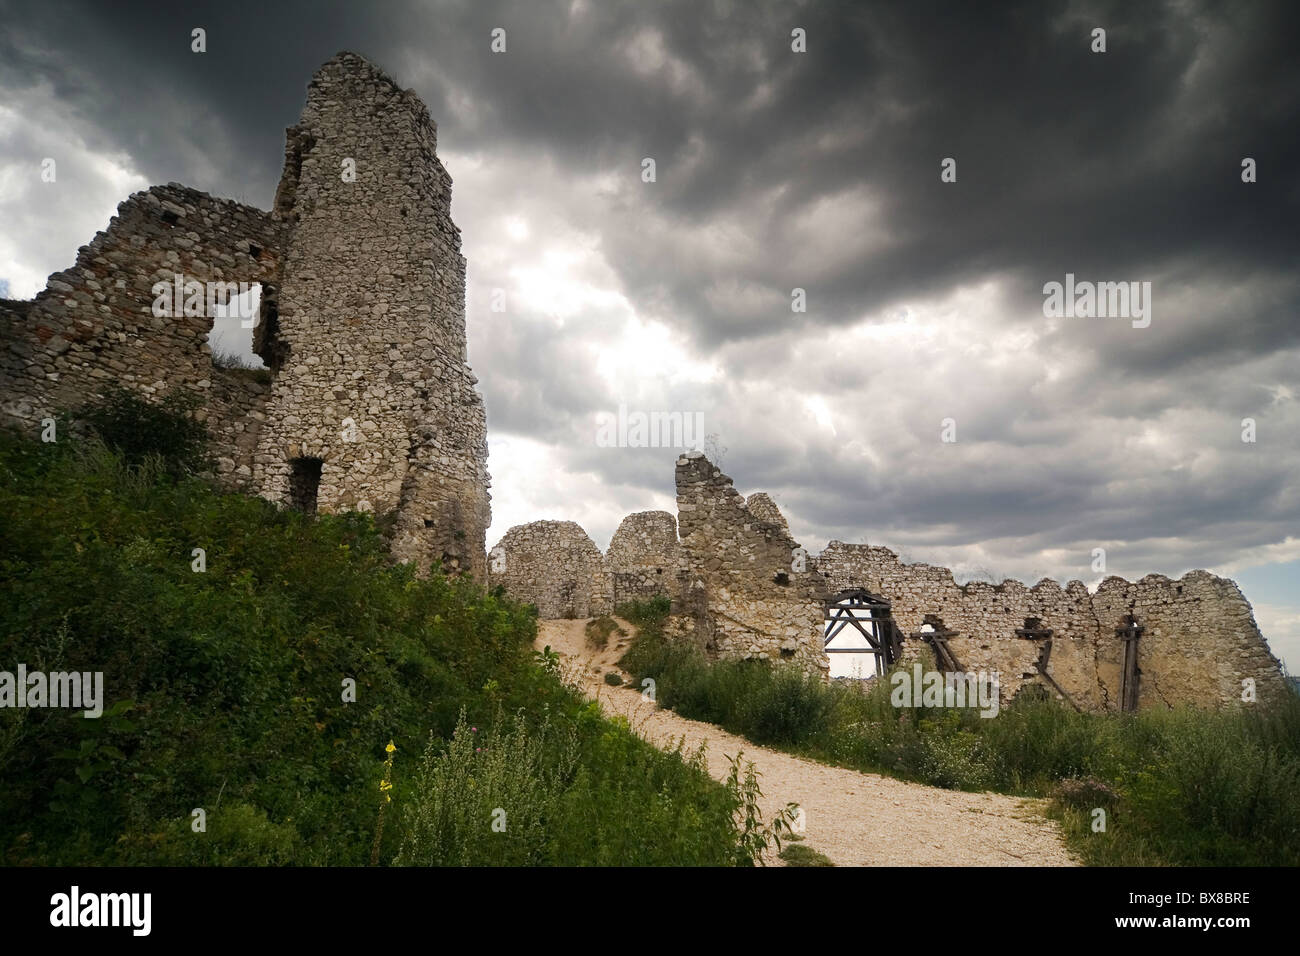 the ruins of castle Cachtice - Slovakia Stock Photo